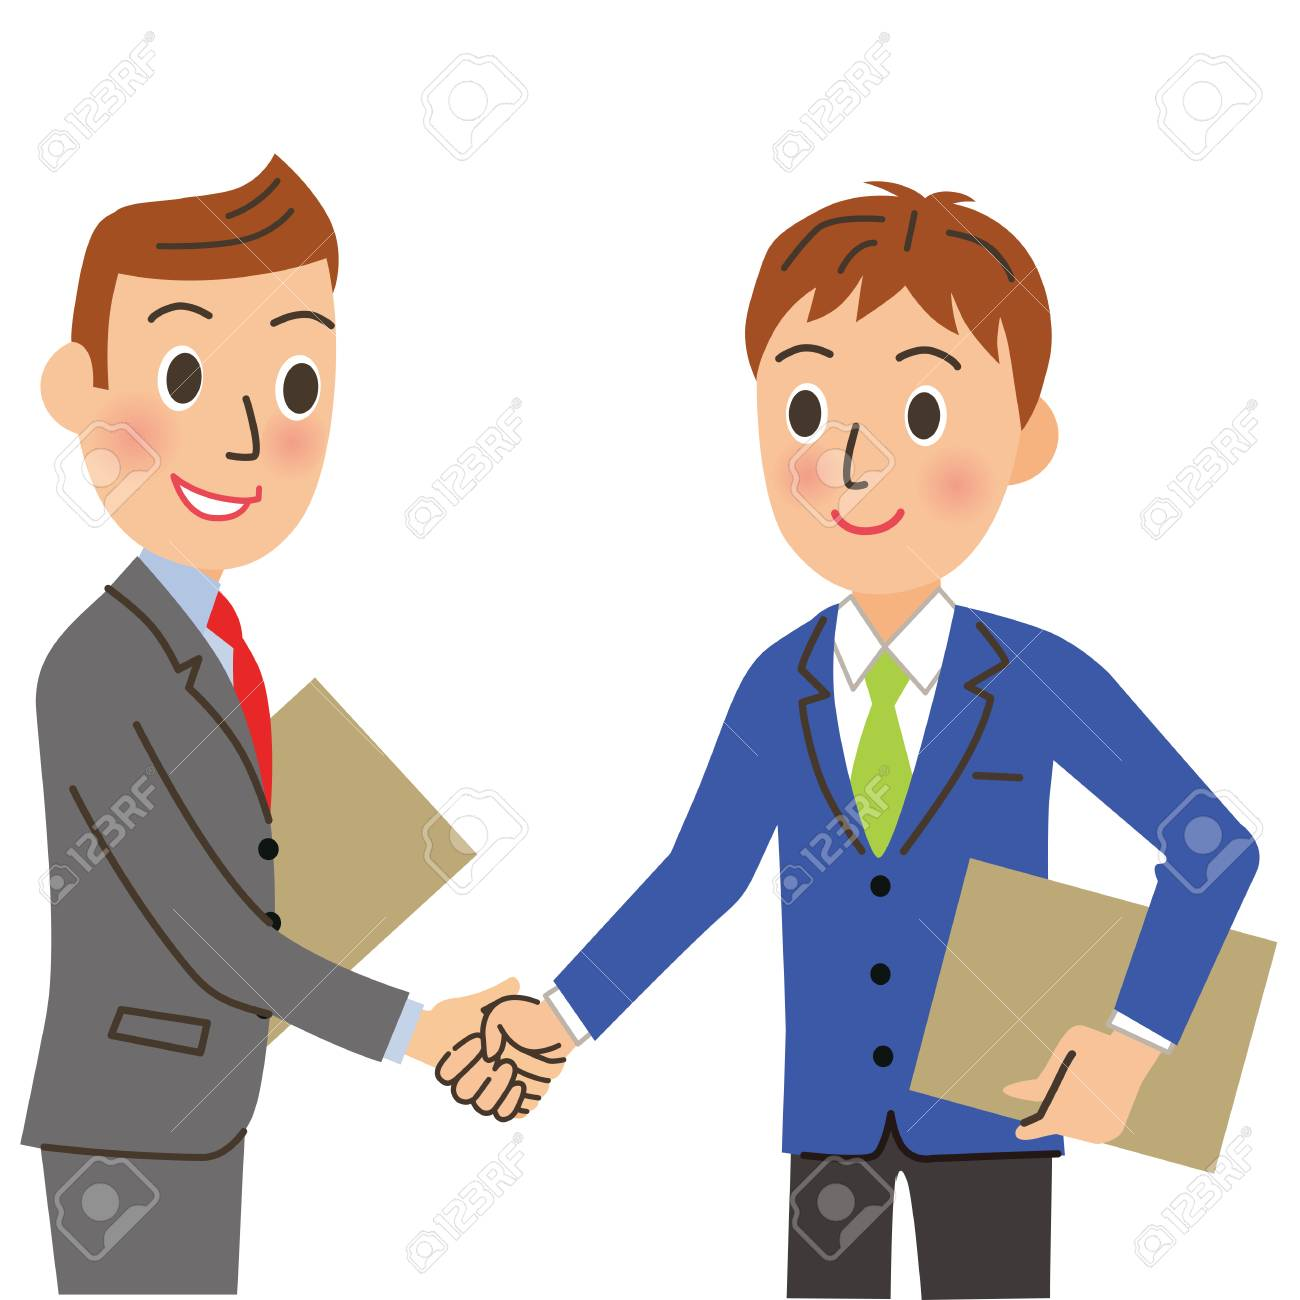 Employee who shakes hands - 119208302